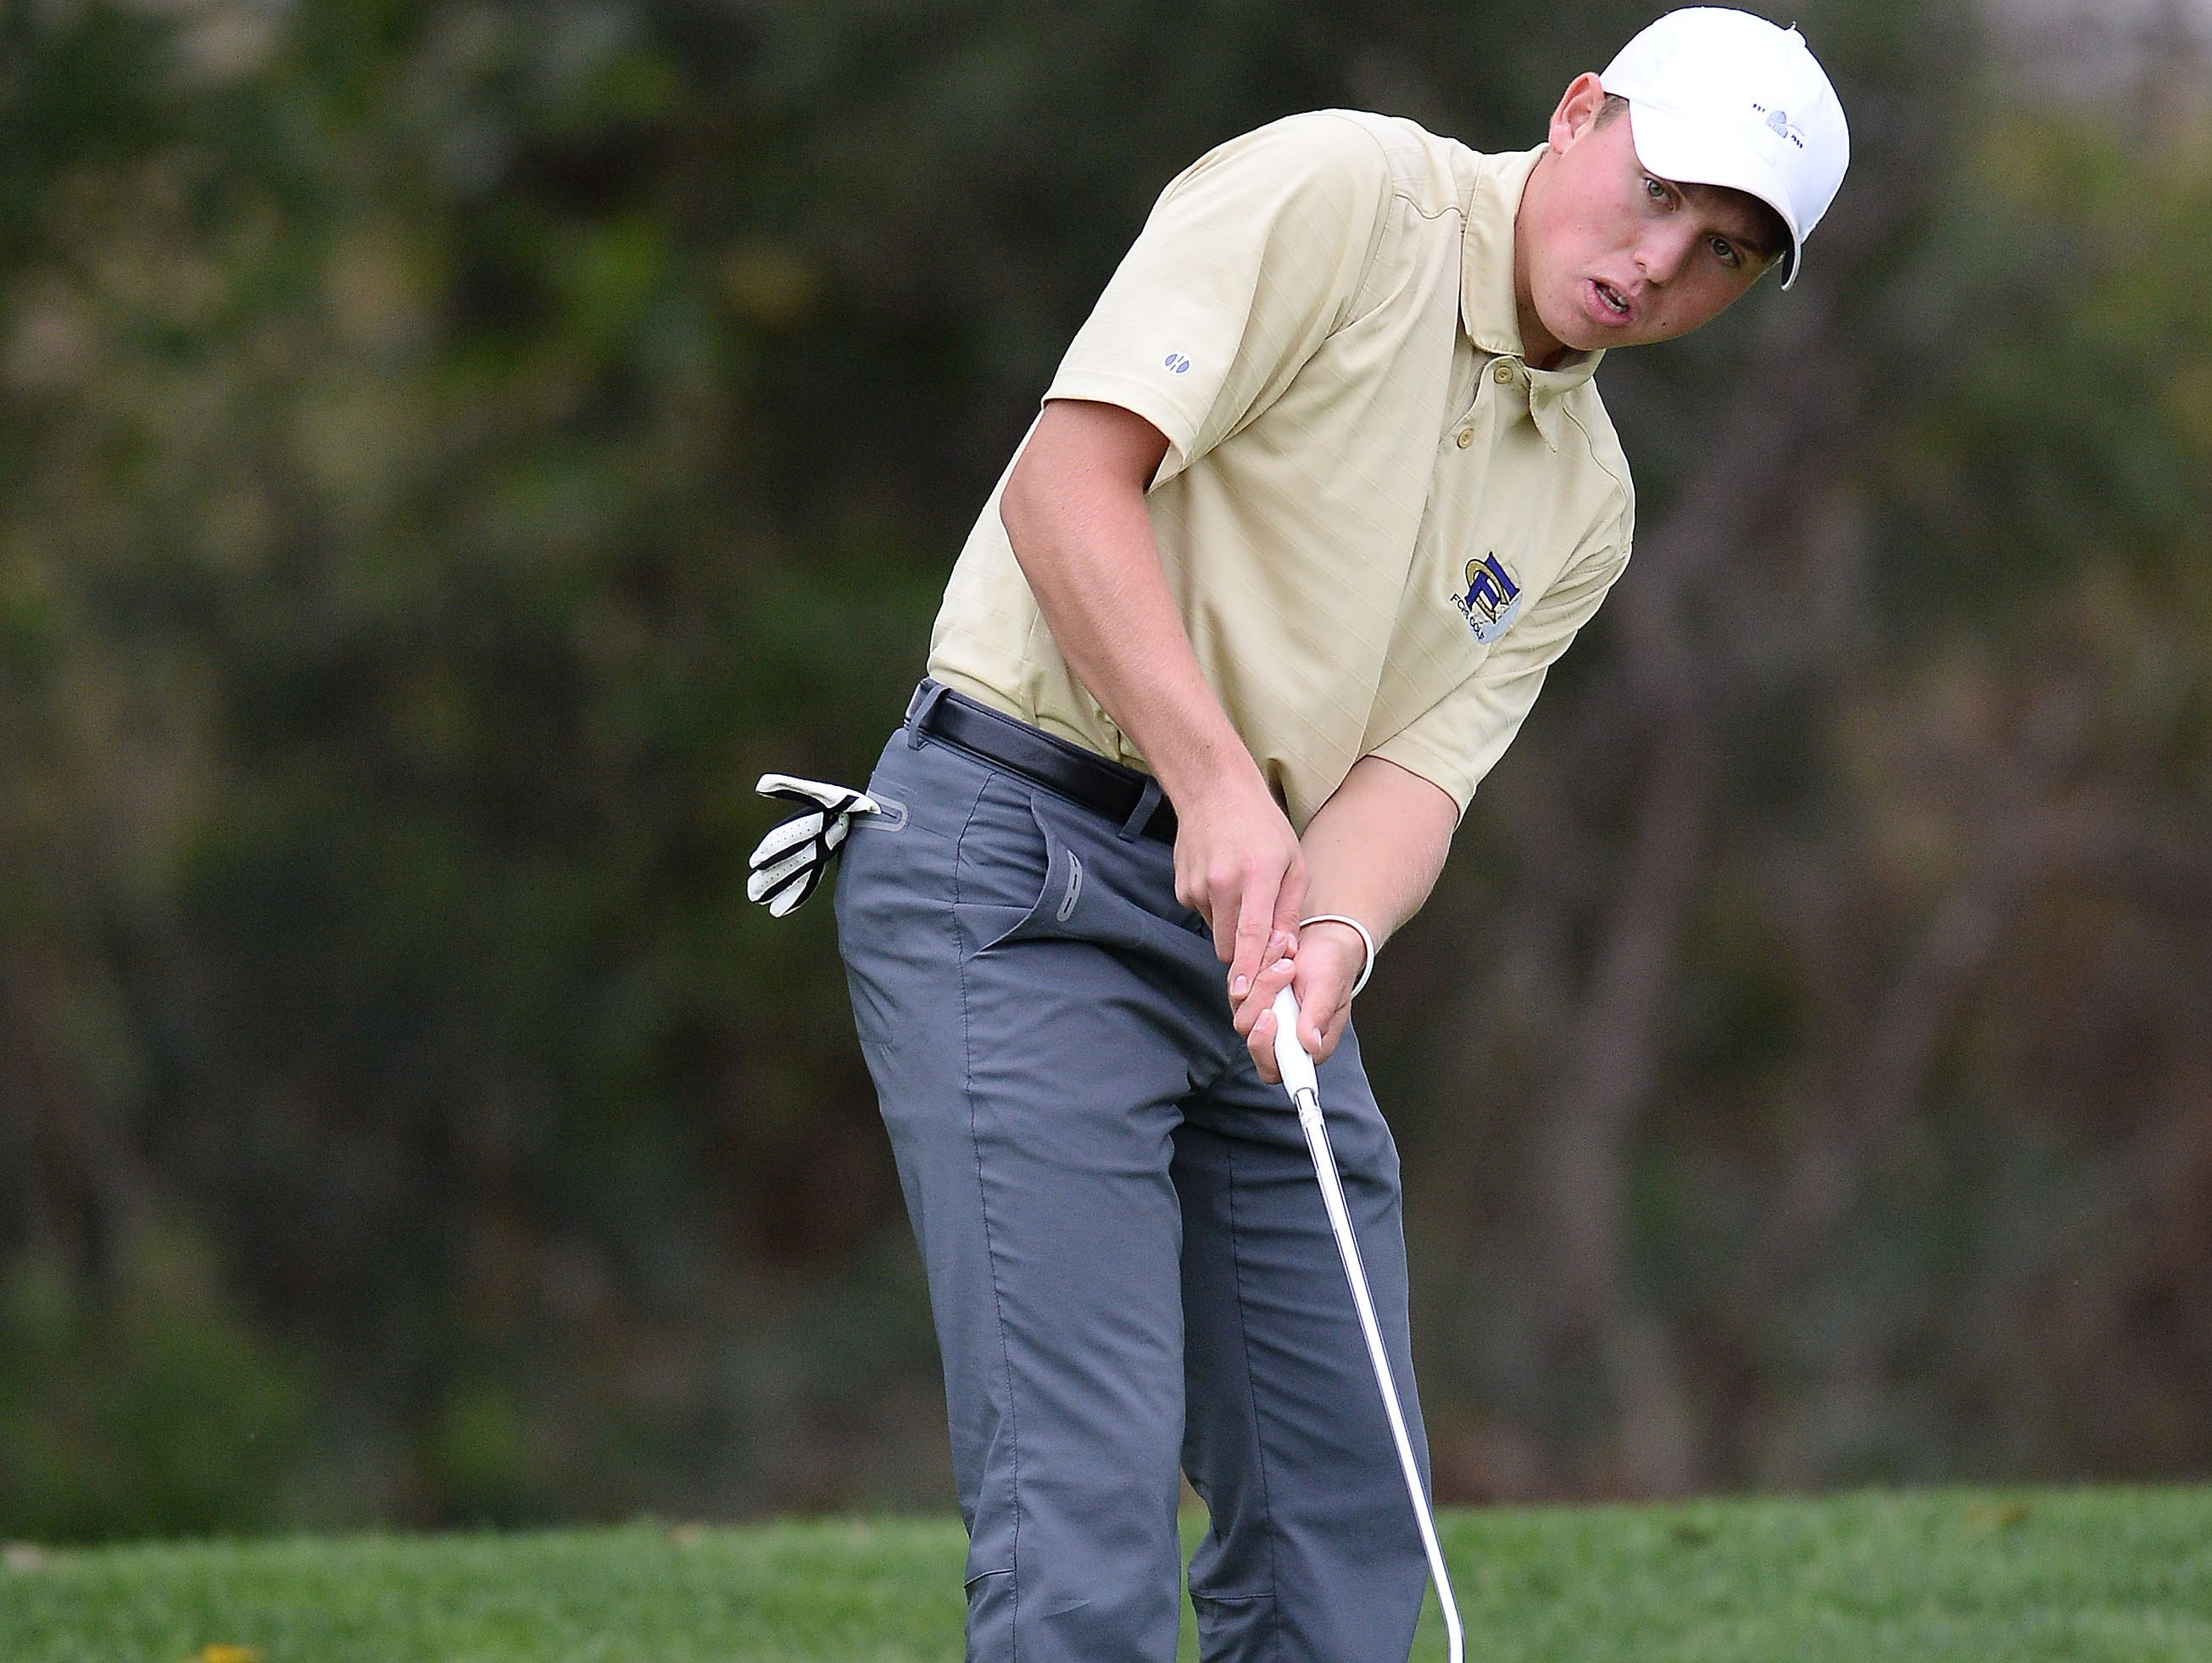 Fort Collins High School senior Hunter Paugh putts during the Class 5A state golf tournament at Fort Collins Country Club on Tuesday, October 6, 2015.